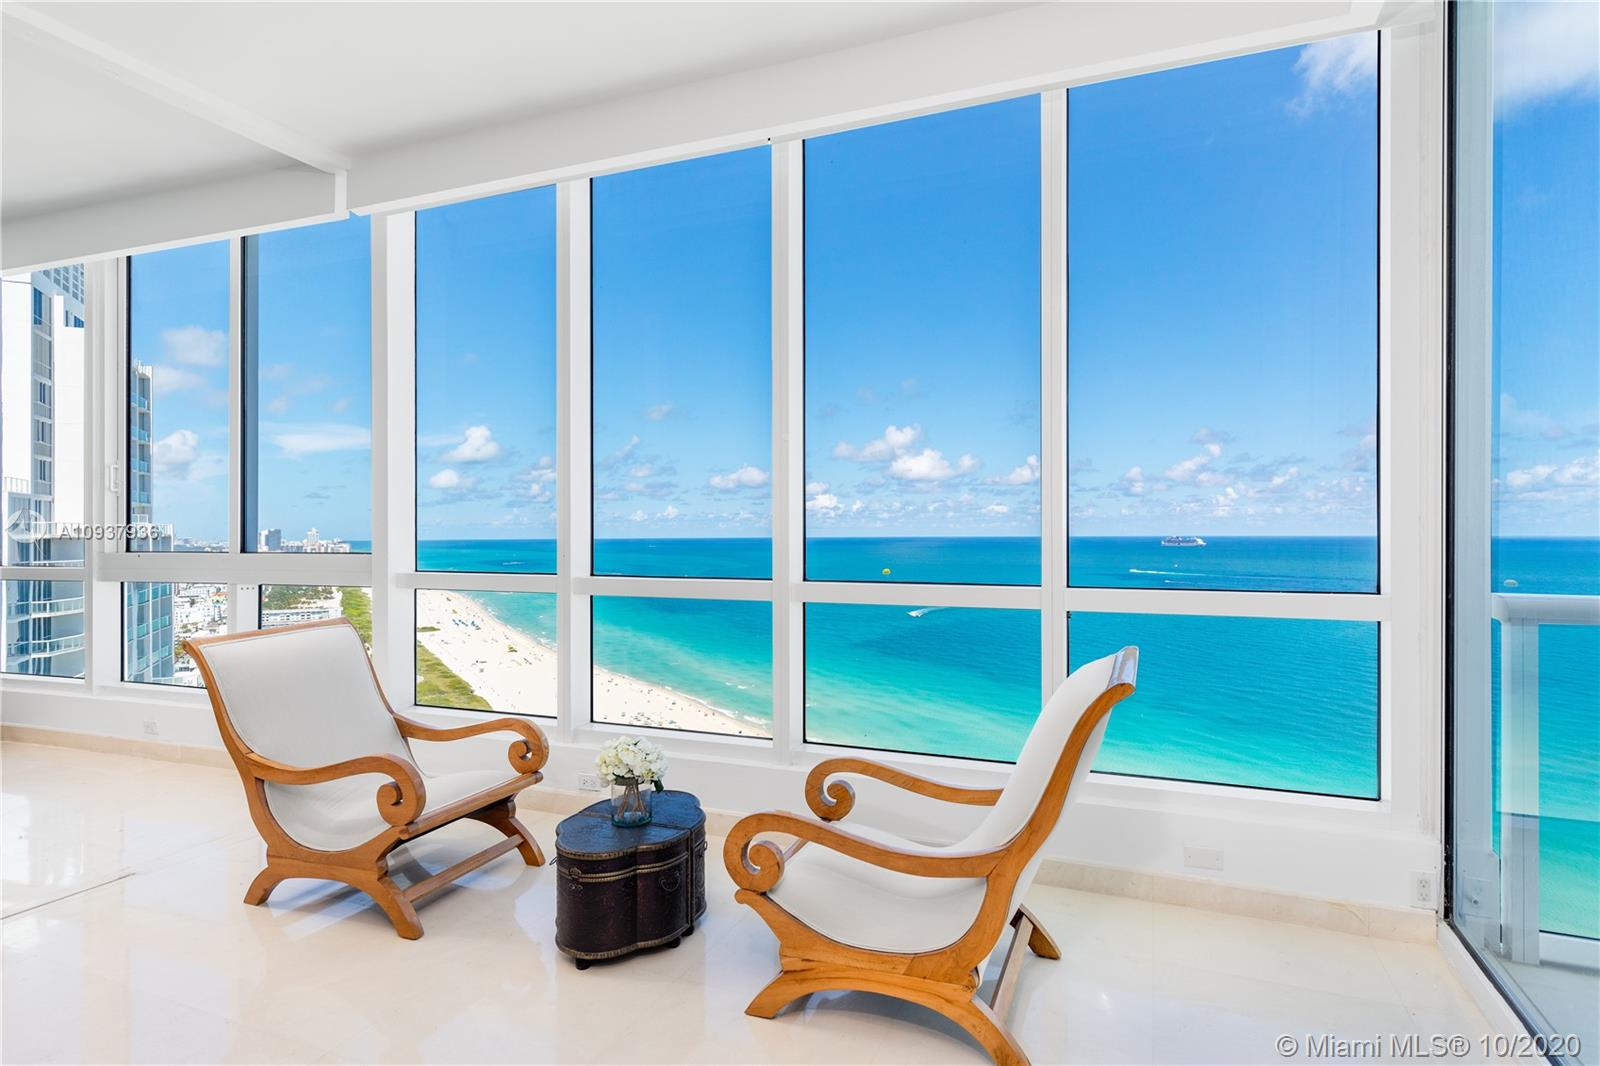 Enter through your private foyer entrance and you are greeted by floor-to-ceiling panoramic ocean views that will take your breath away. From the moment you step in, you are enveloped in the ultimate oceanfront lifestyle. Featuring 2 bedrooms, 2 full bathrooms, unobstructed Atlantic Ocean and Government Cut views from every room, an oceanfront balcony offering the epitome of relaxation, gourmet kitchen with Sub Zero and Miele appliances, walk-in closets in every room, dual sinks in the principal bathroom suite, ample storage throughout and a full marble finished 2nd bathroom. Enjoy luxury resort-style amenities including beach club, spa, state-of-the-art fitness center with rooftop lap pool, 2 lagoon pools, lap pool, on-site restaurant, 3 tennis courts, valet, concierge and 24-hr security.